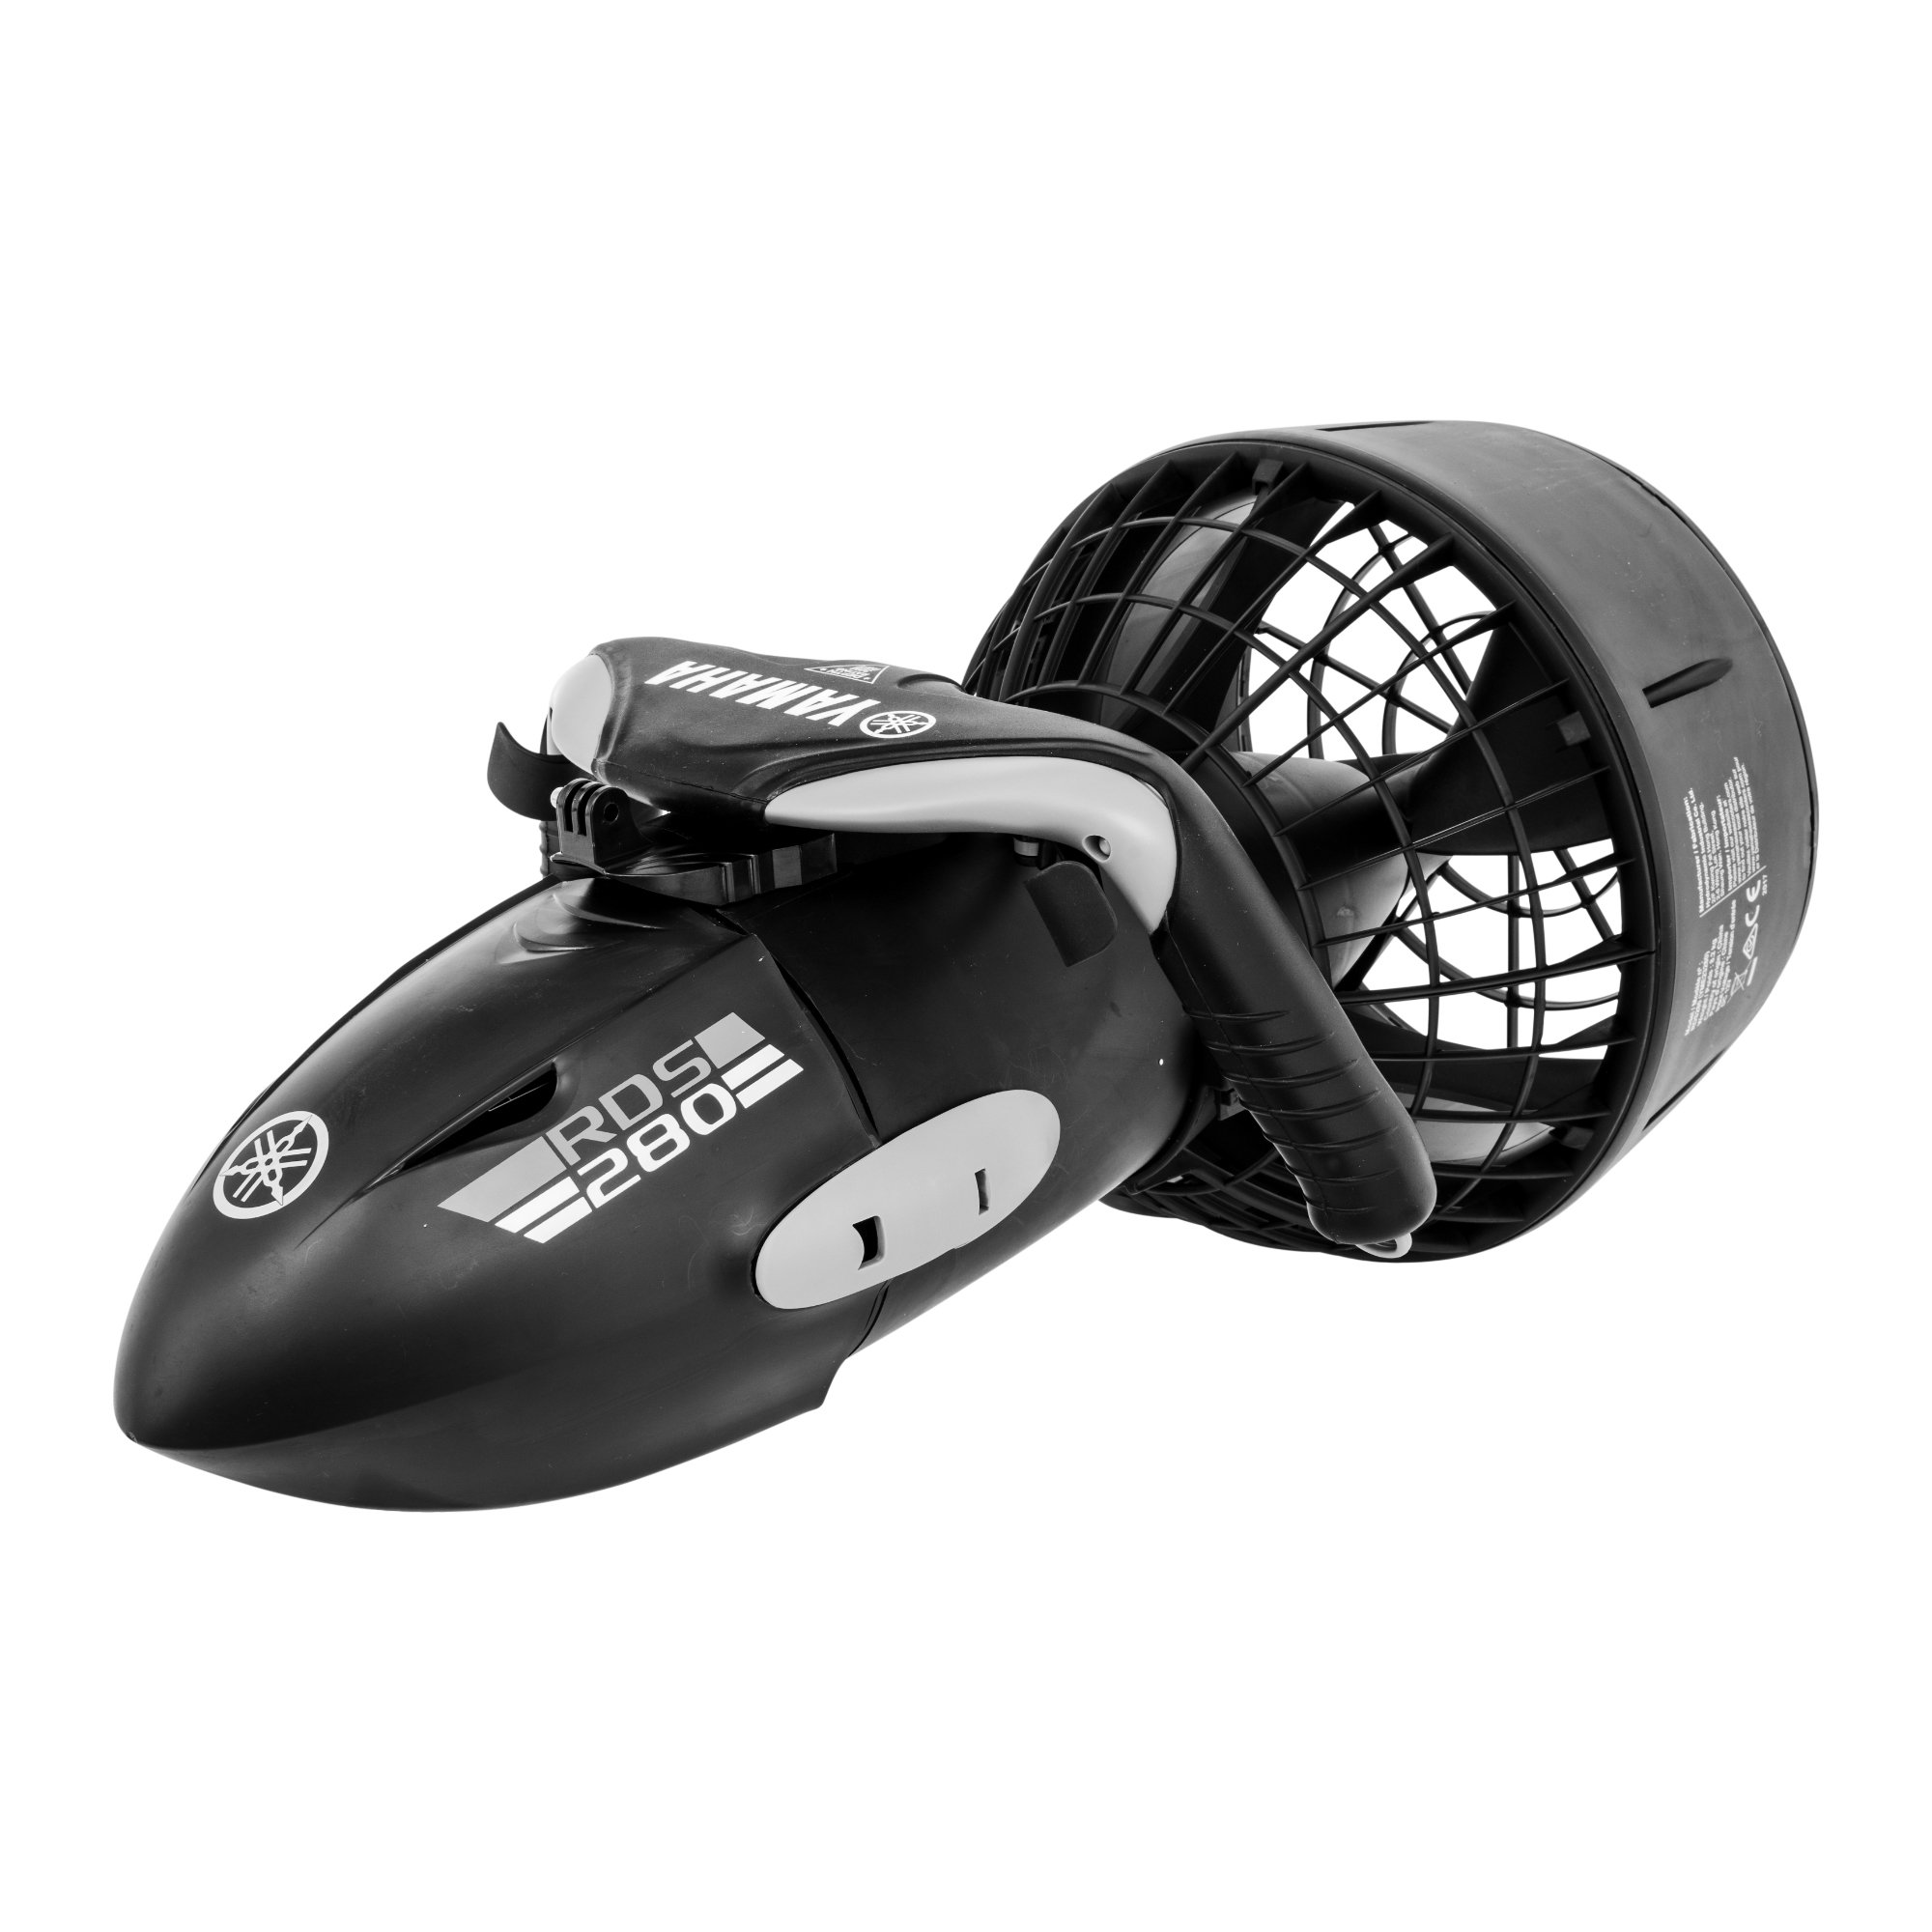 YAMAHA Seascooters with Camera Mount Recreational Dive Series Underwater Scooter (Black/Gray)